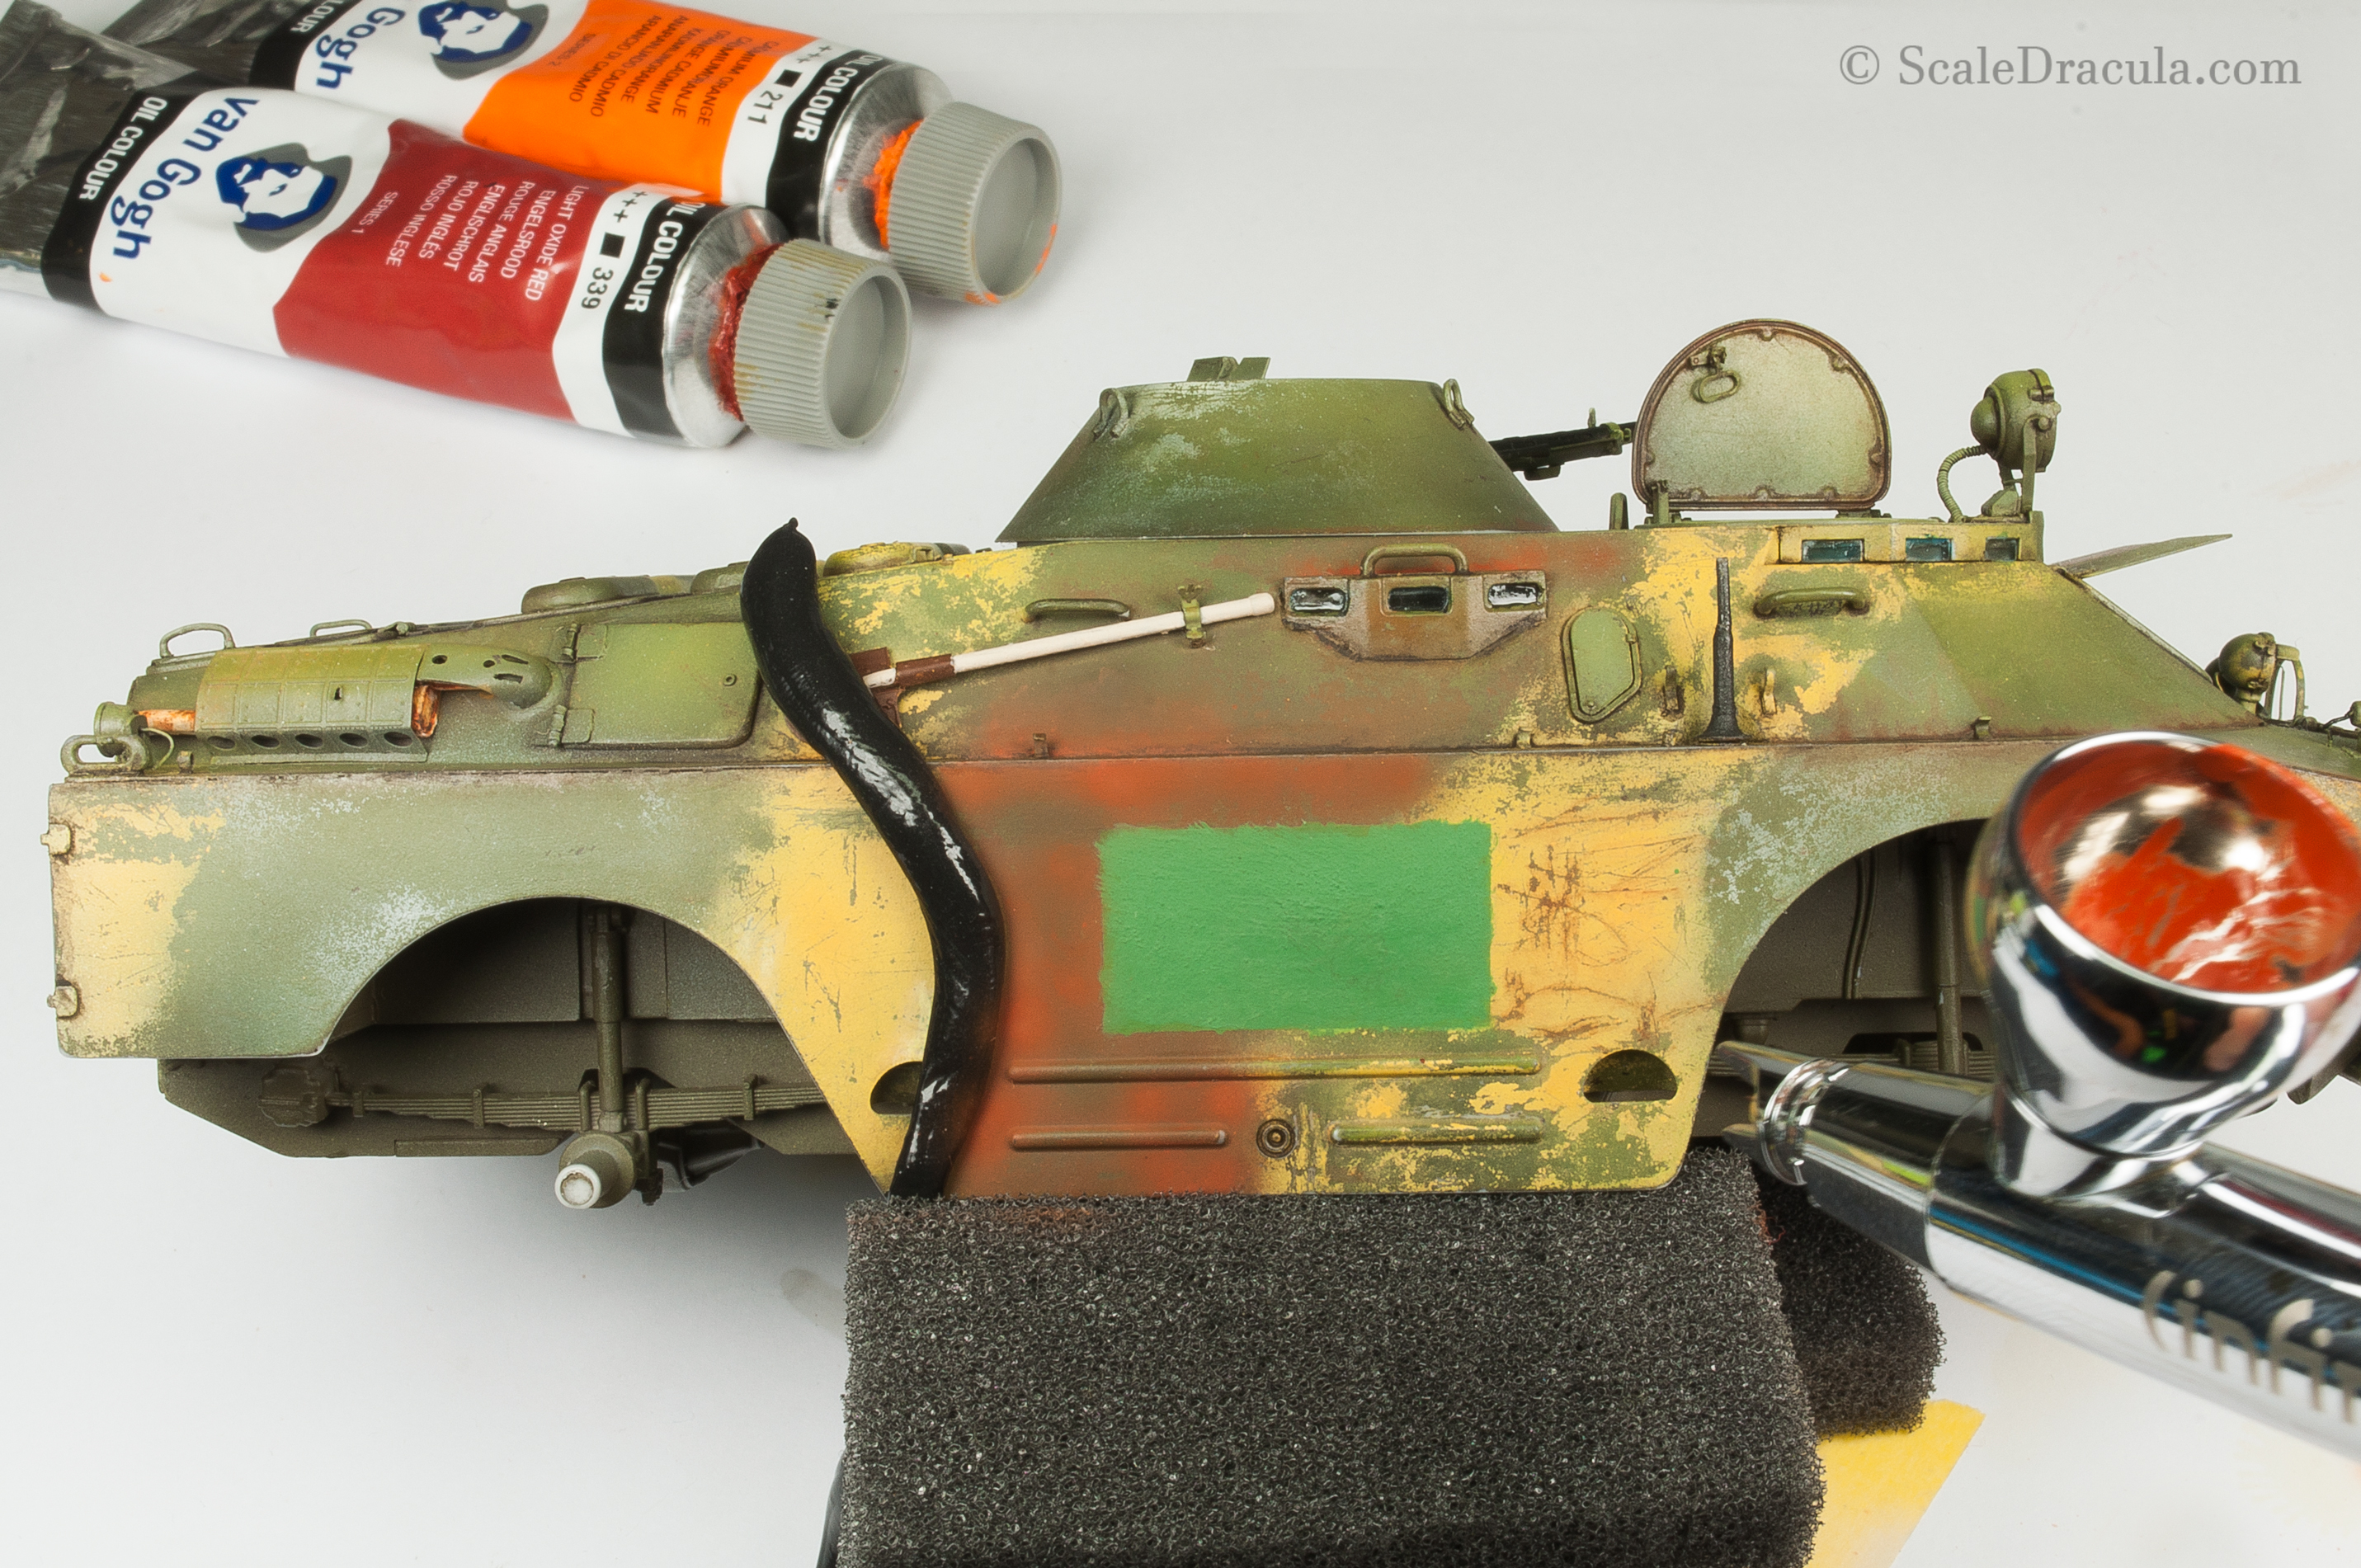 Airbrushing oil paints, BRDM-2 by Trumpeter